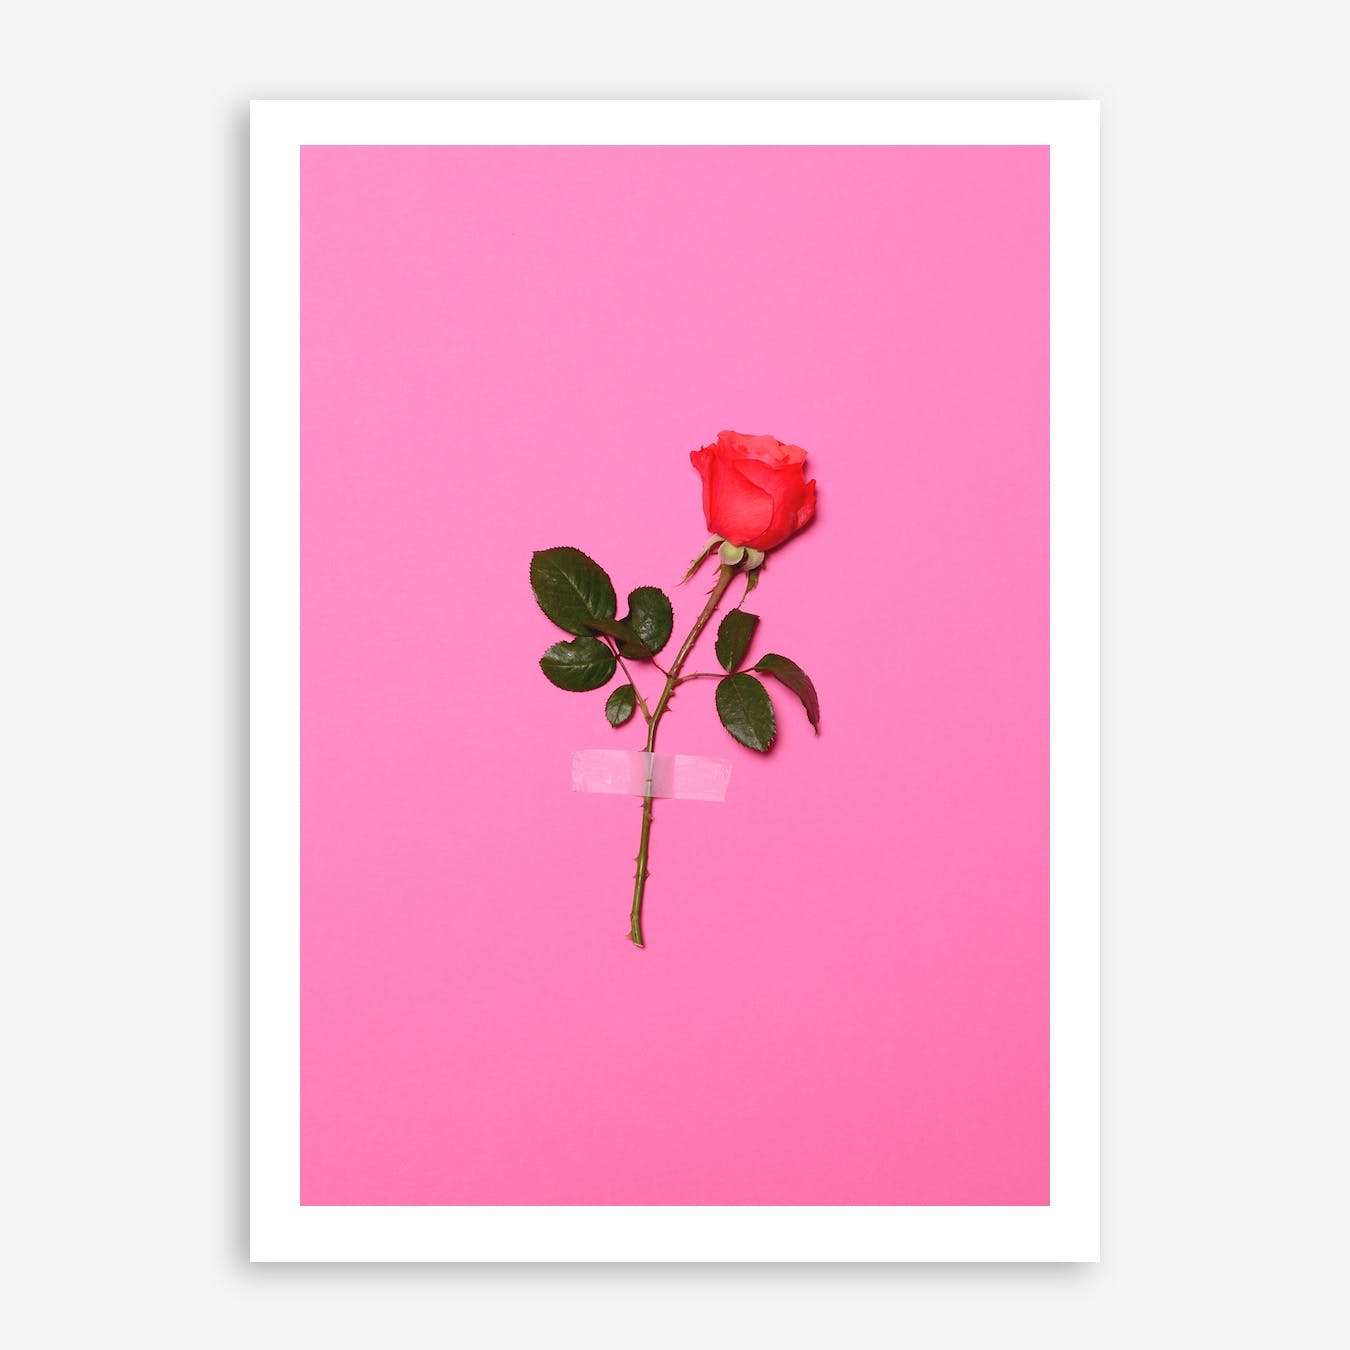 Wall Flower In Print